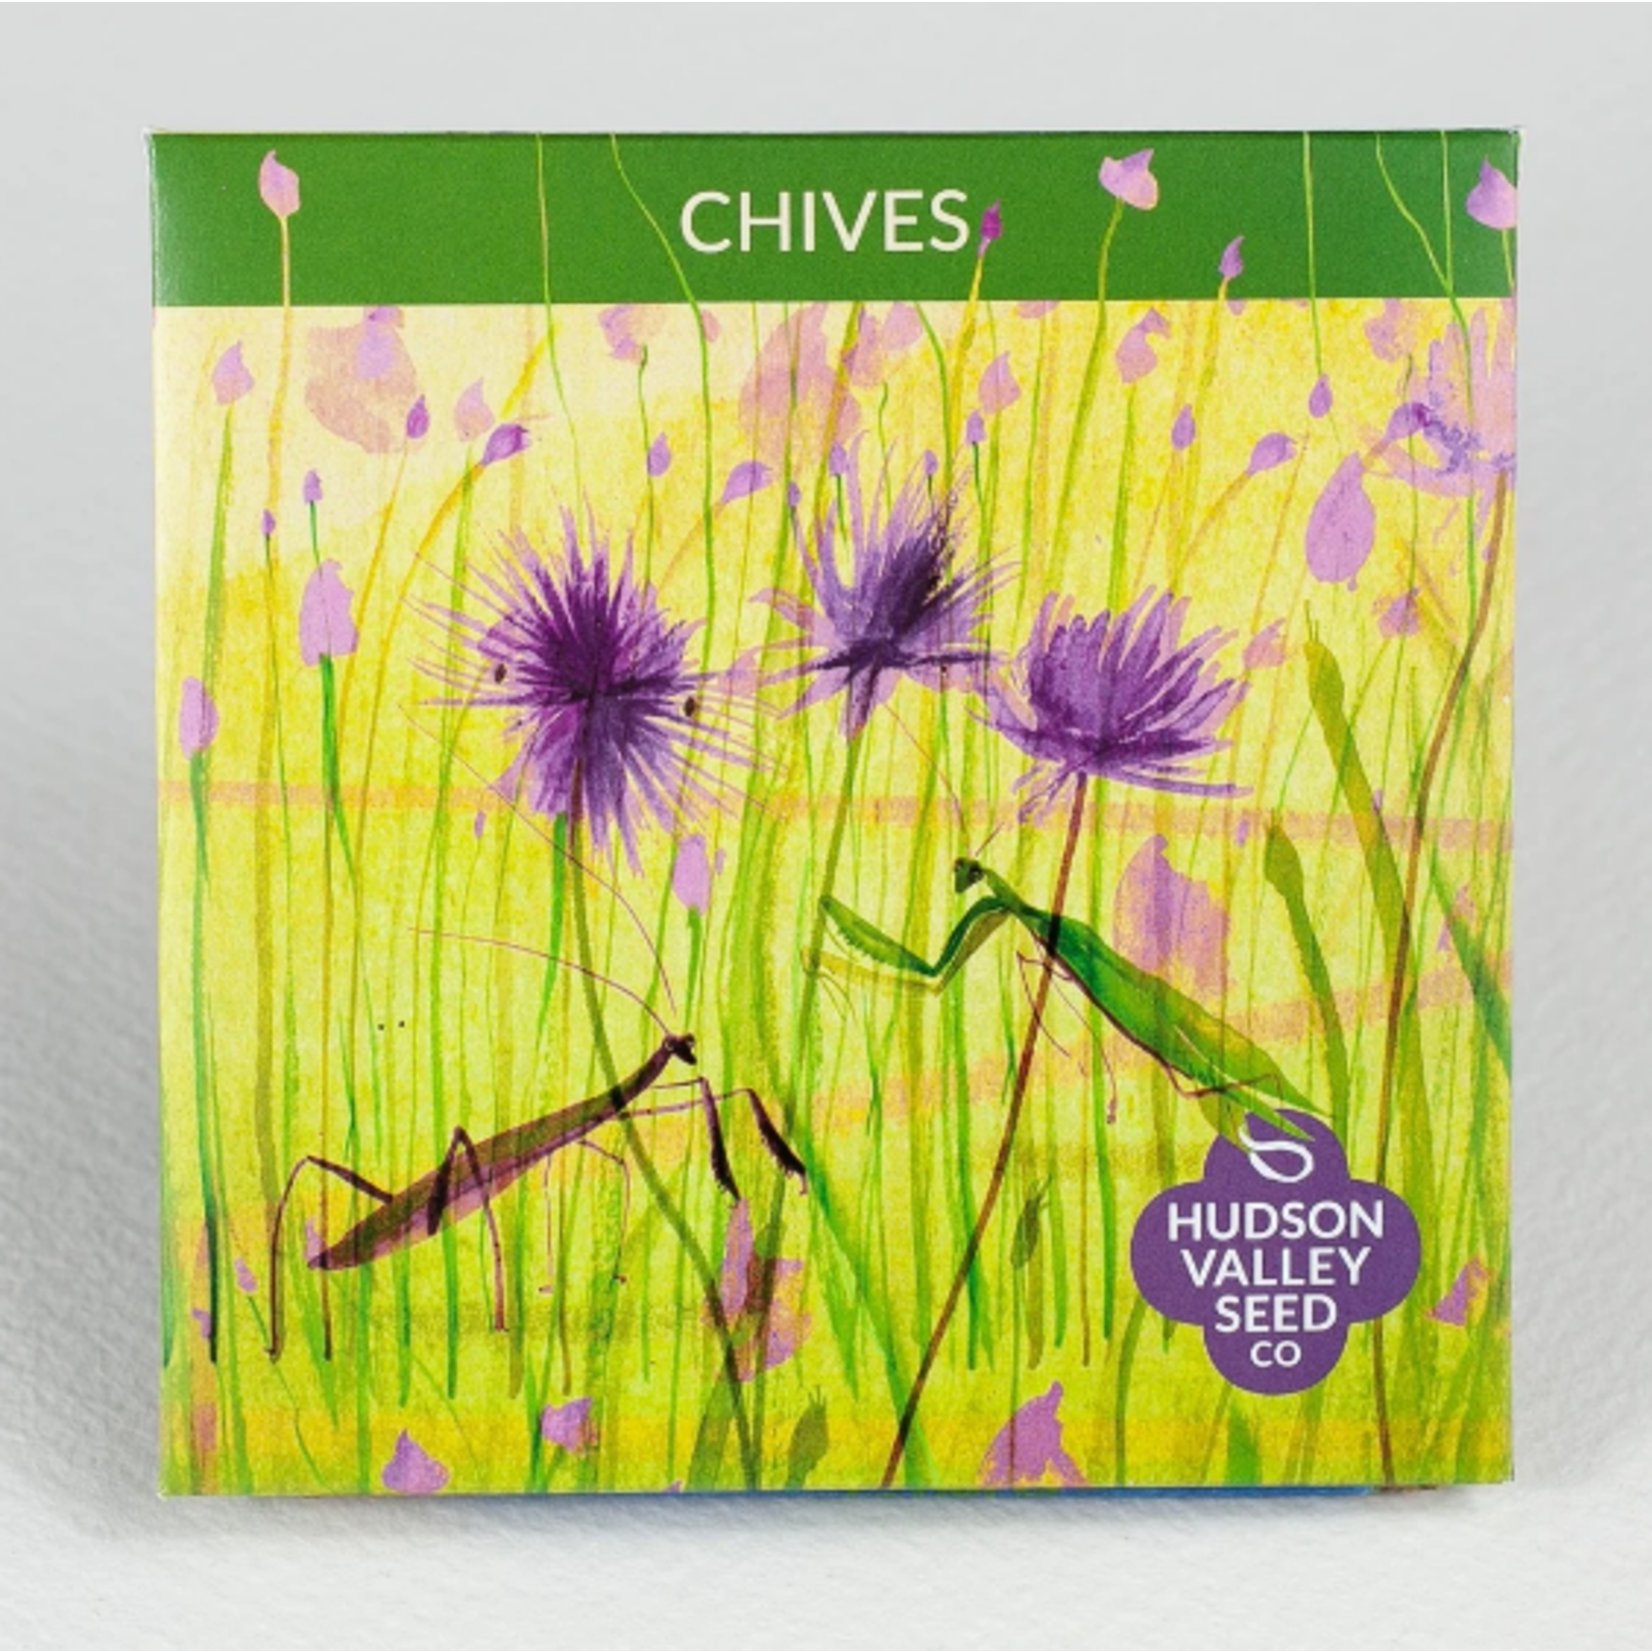 Hudson Valley Seeds Chives Seeds